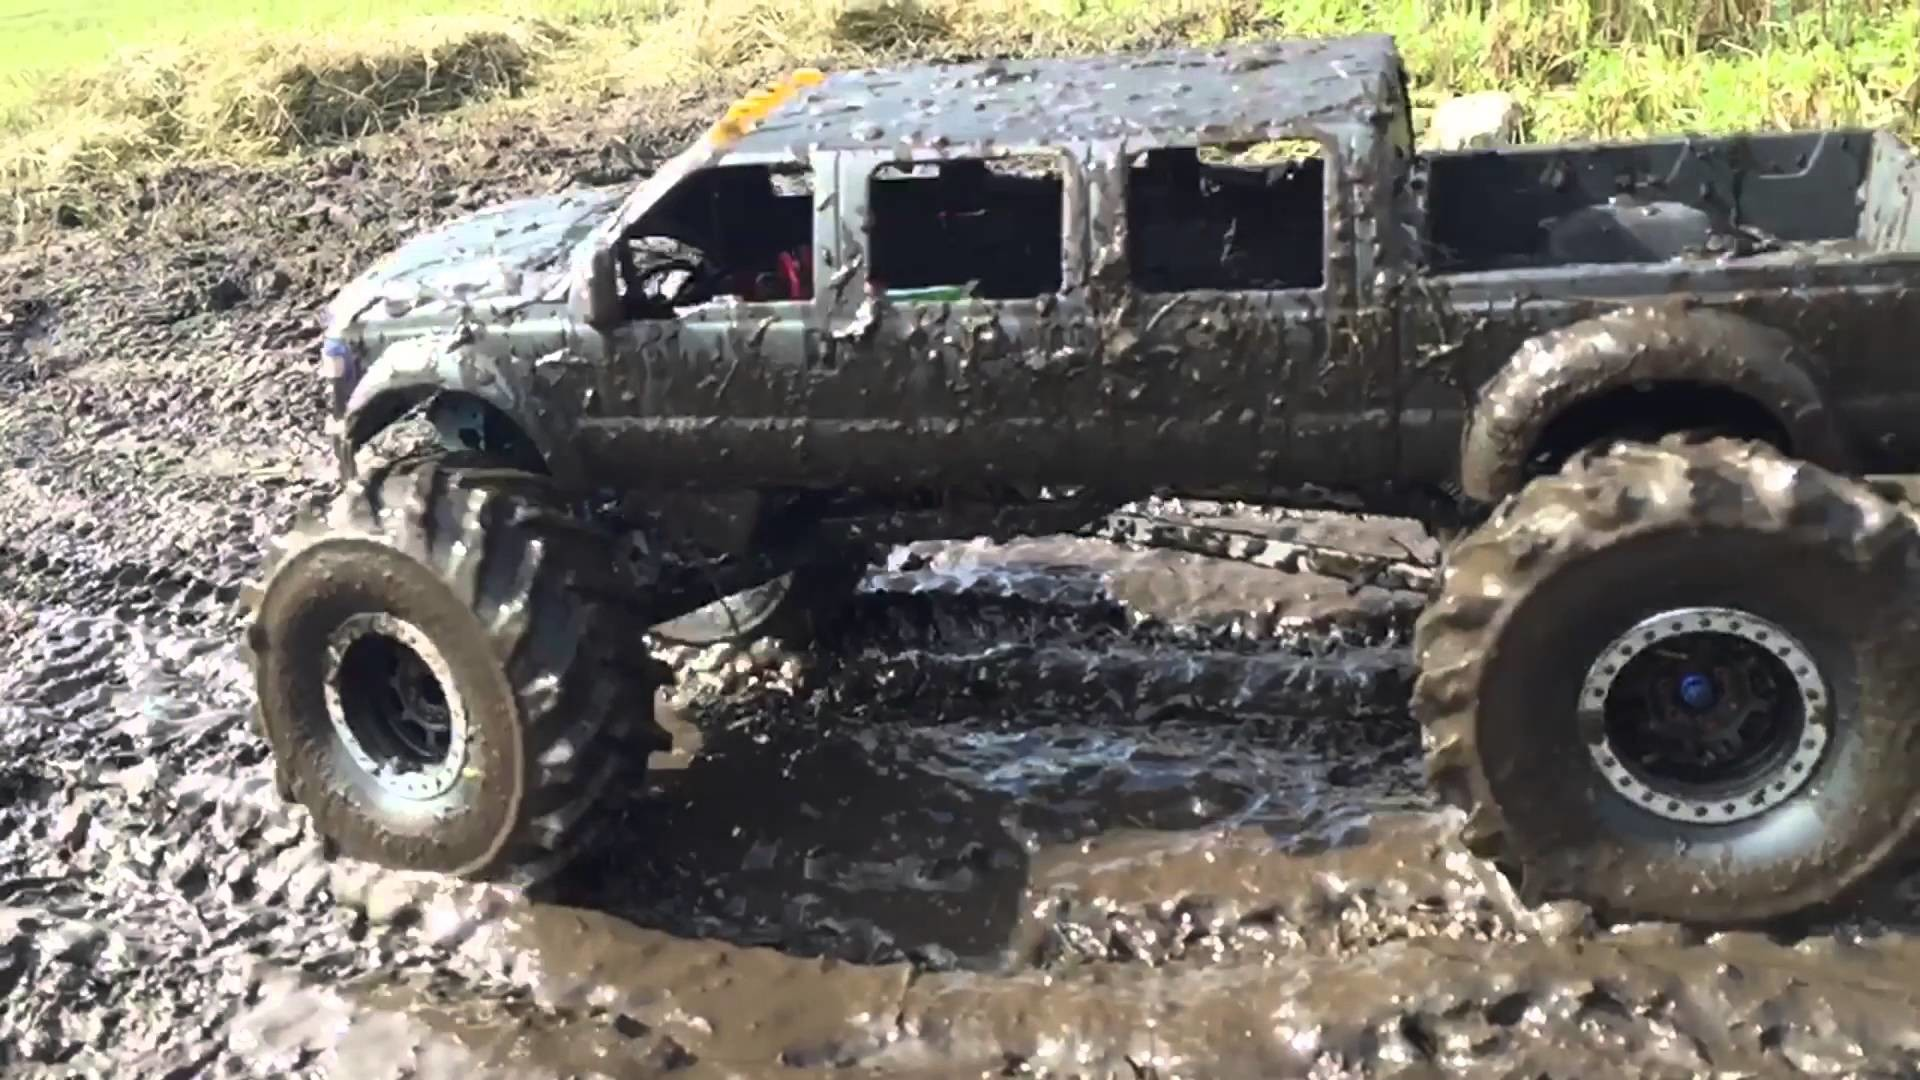 Res: 1920x1080, Rc Mud Trucks For Sale, Rc Mud Trucks For Sale Cheap, Rc 4x4 Mudding